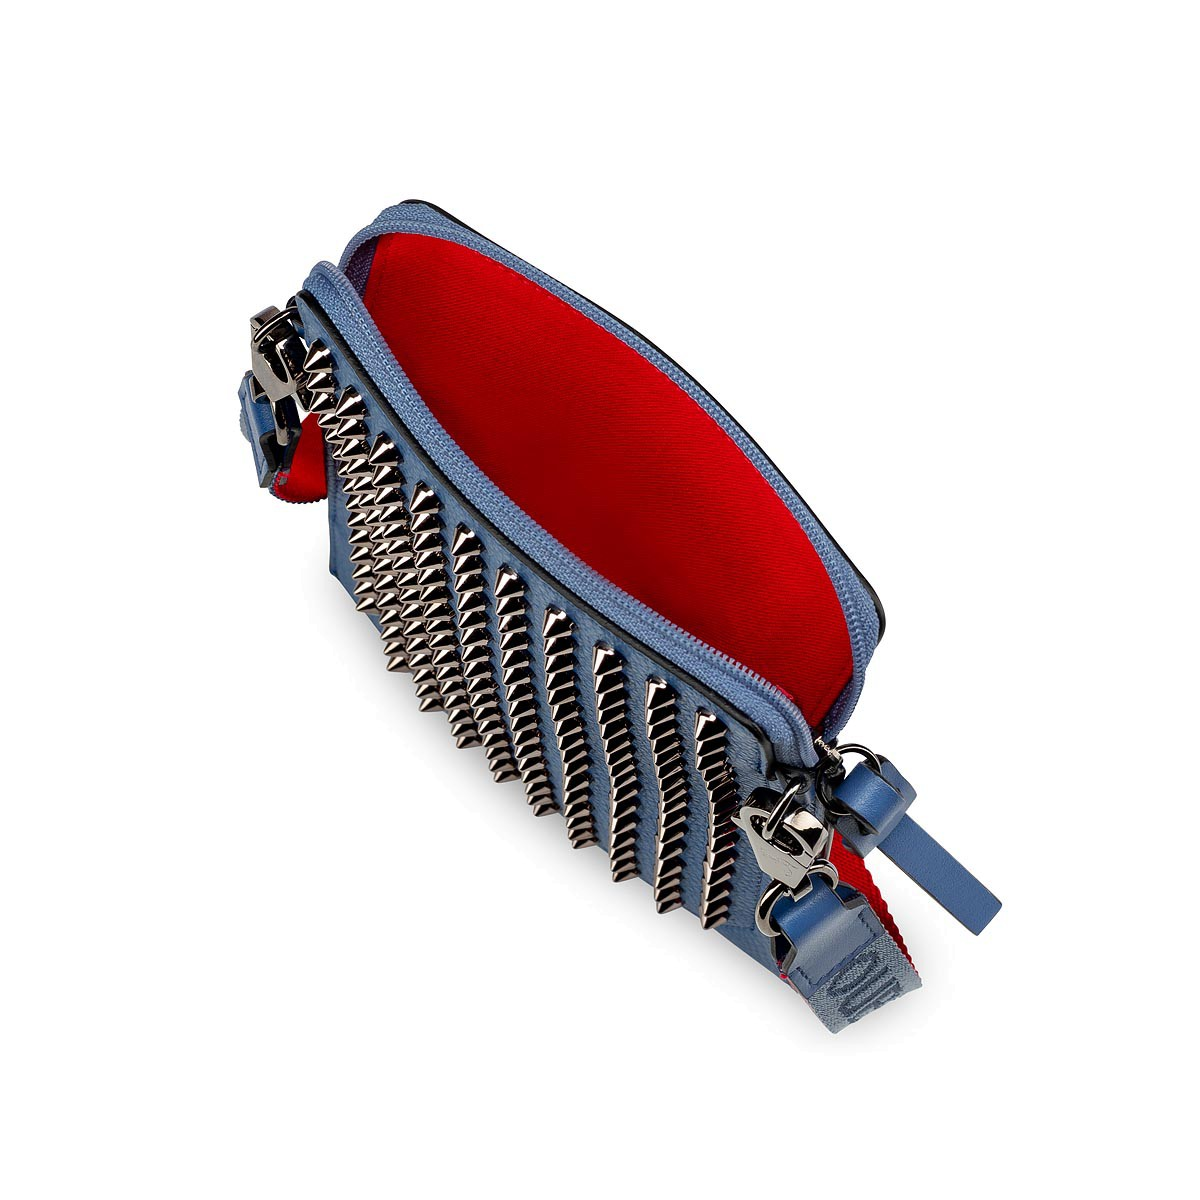 Small Leather Goods - Loubilab - Christian Louboutin